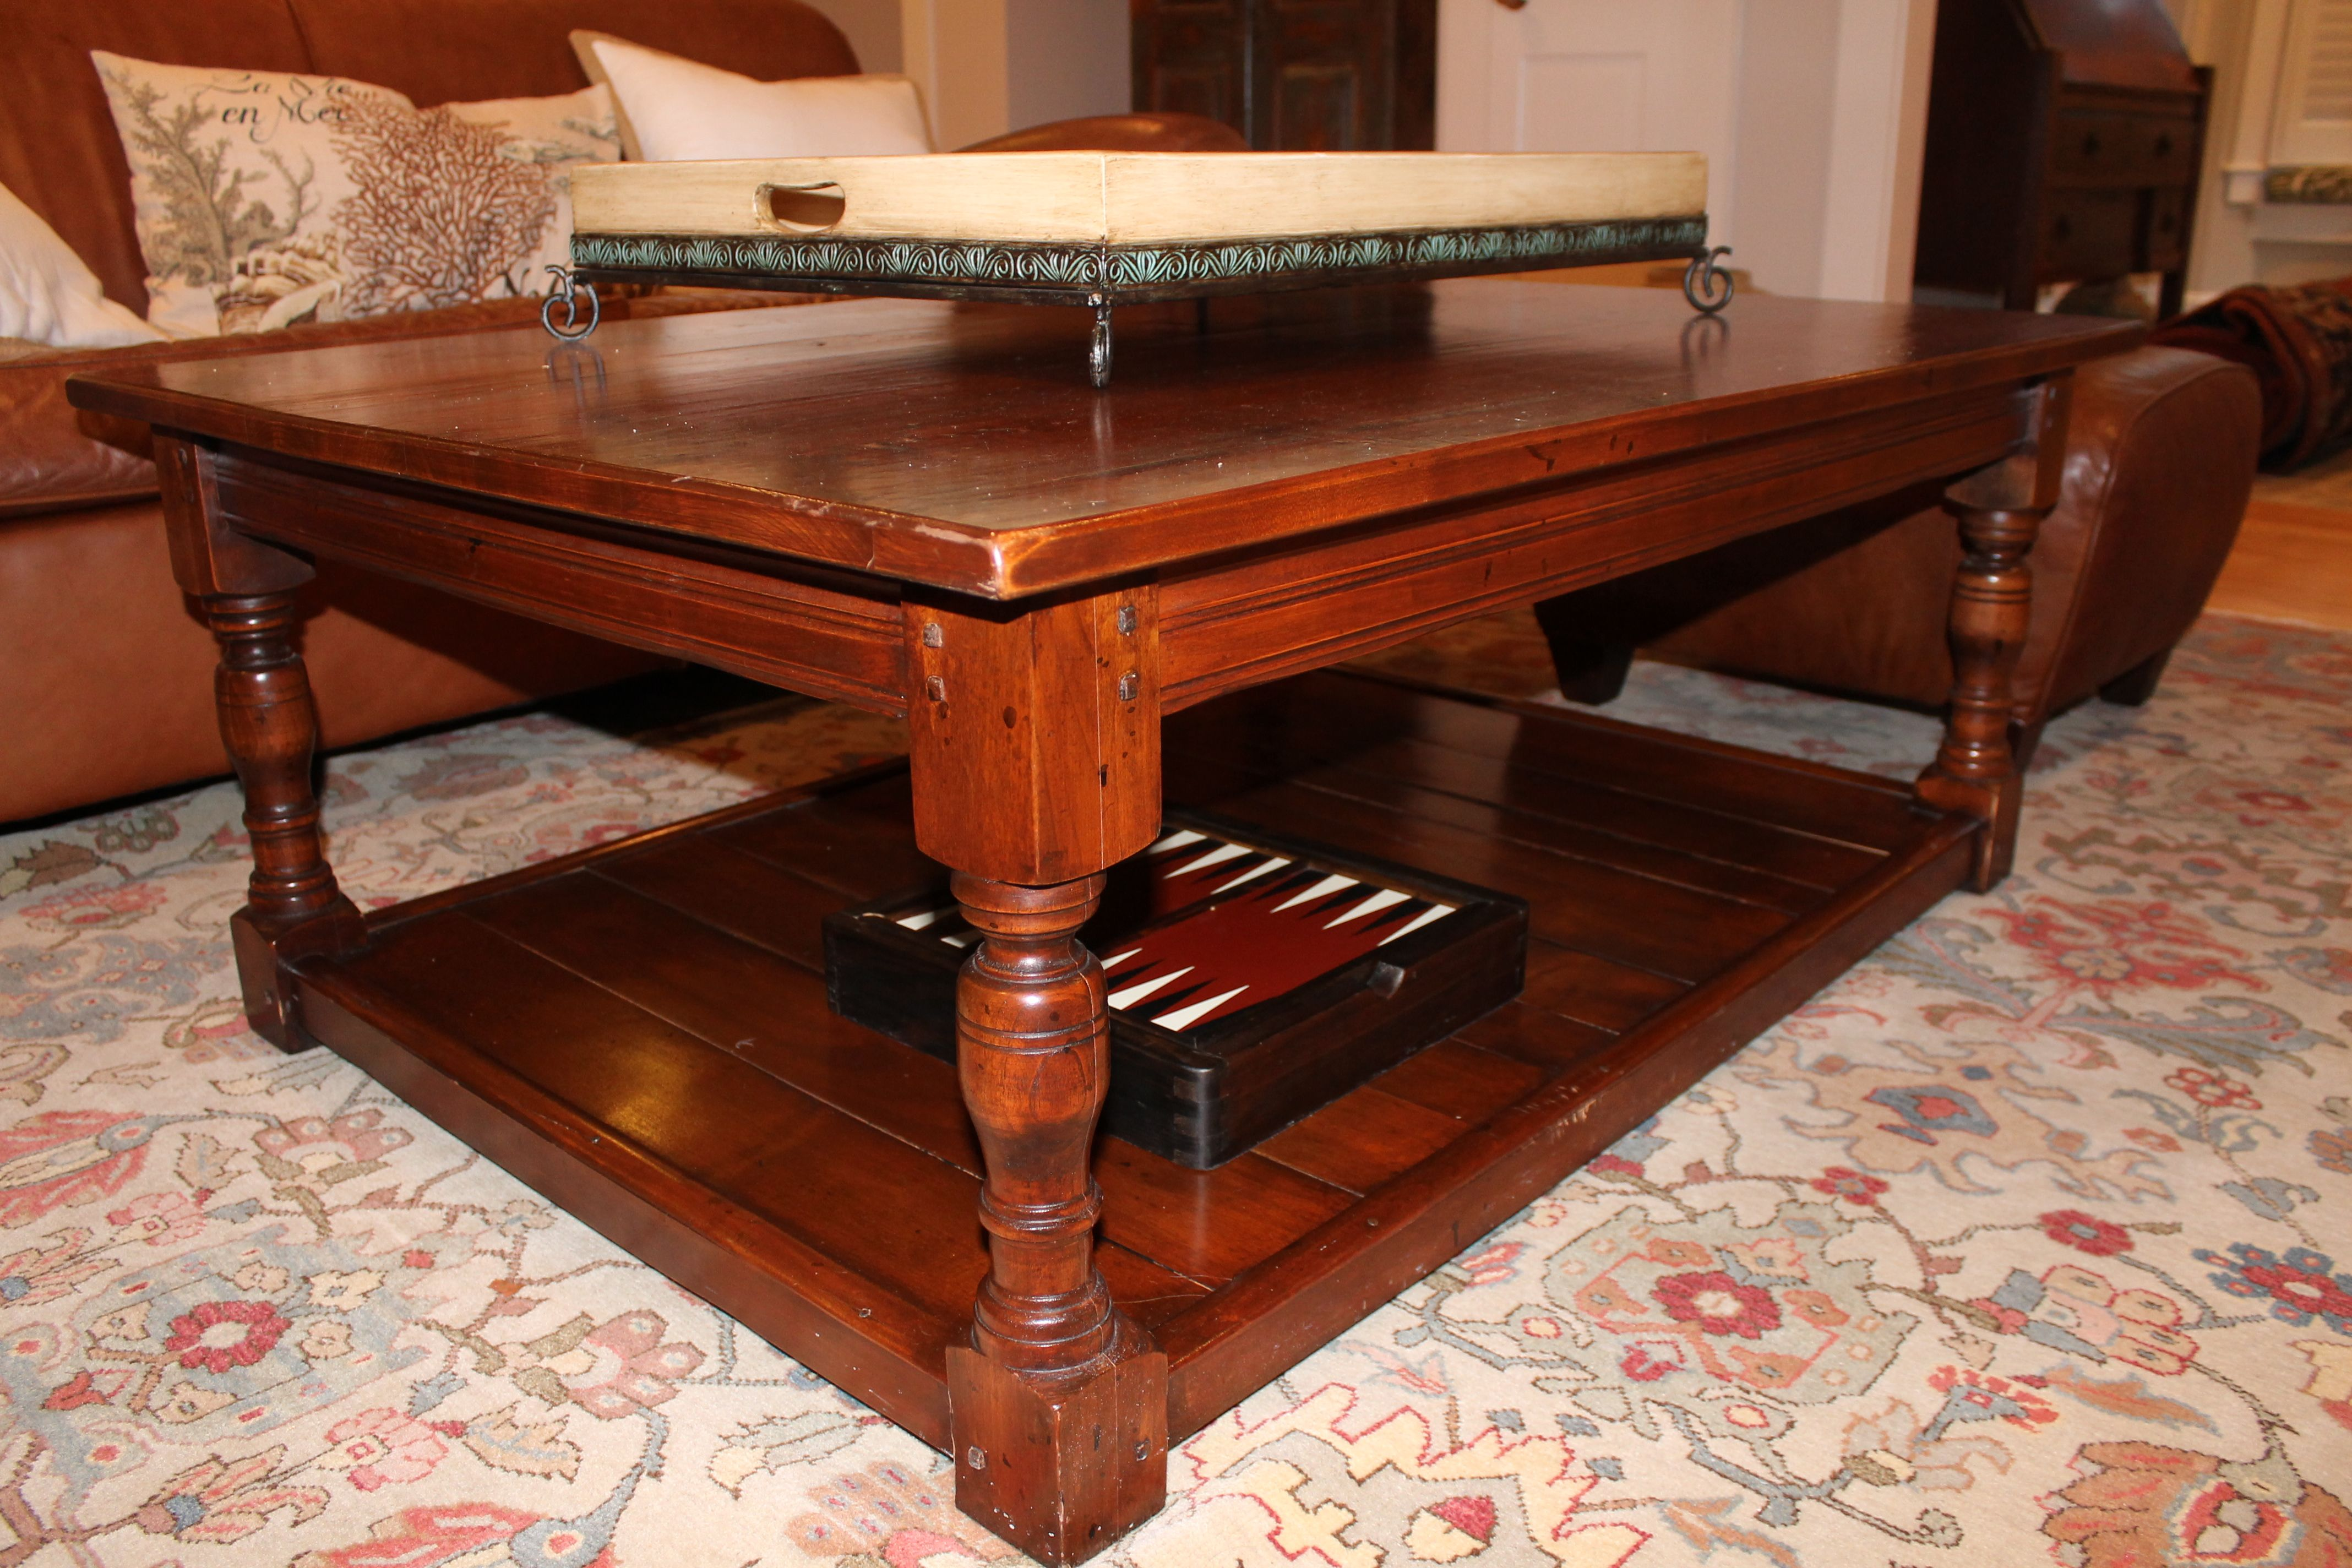 Images about old barn wood furniture on pinterest - Custom Coffee Table From Reclaimed Old Barn Wood Ecustomfinishes Com